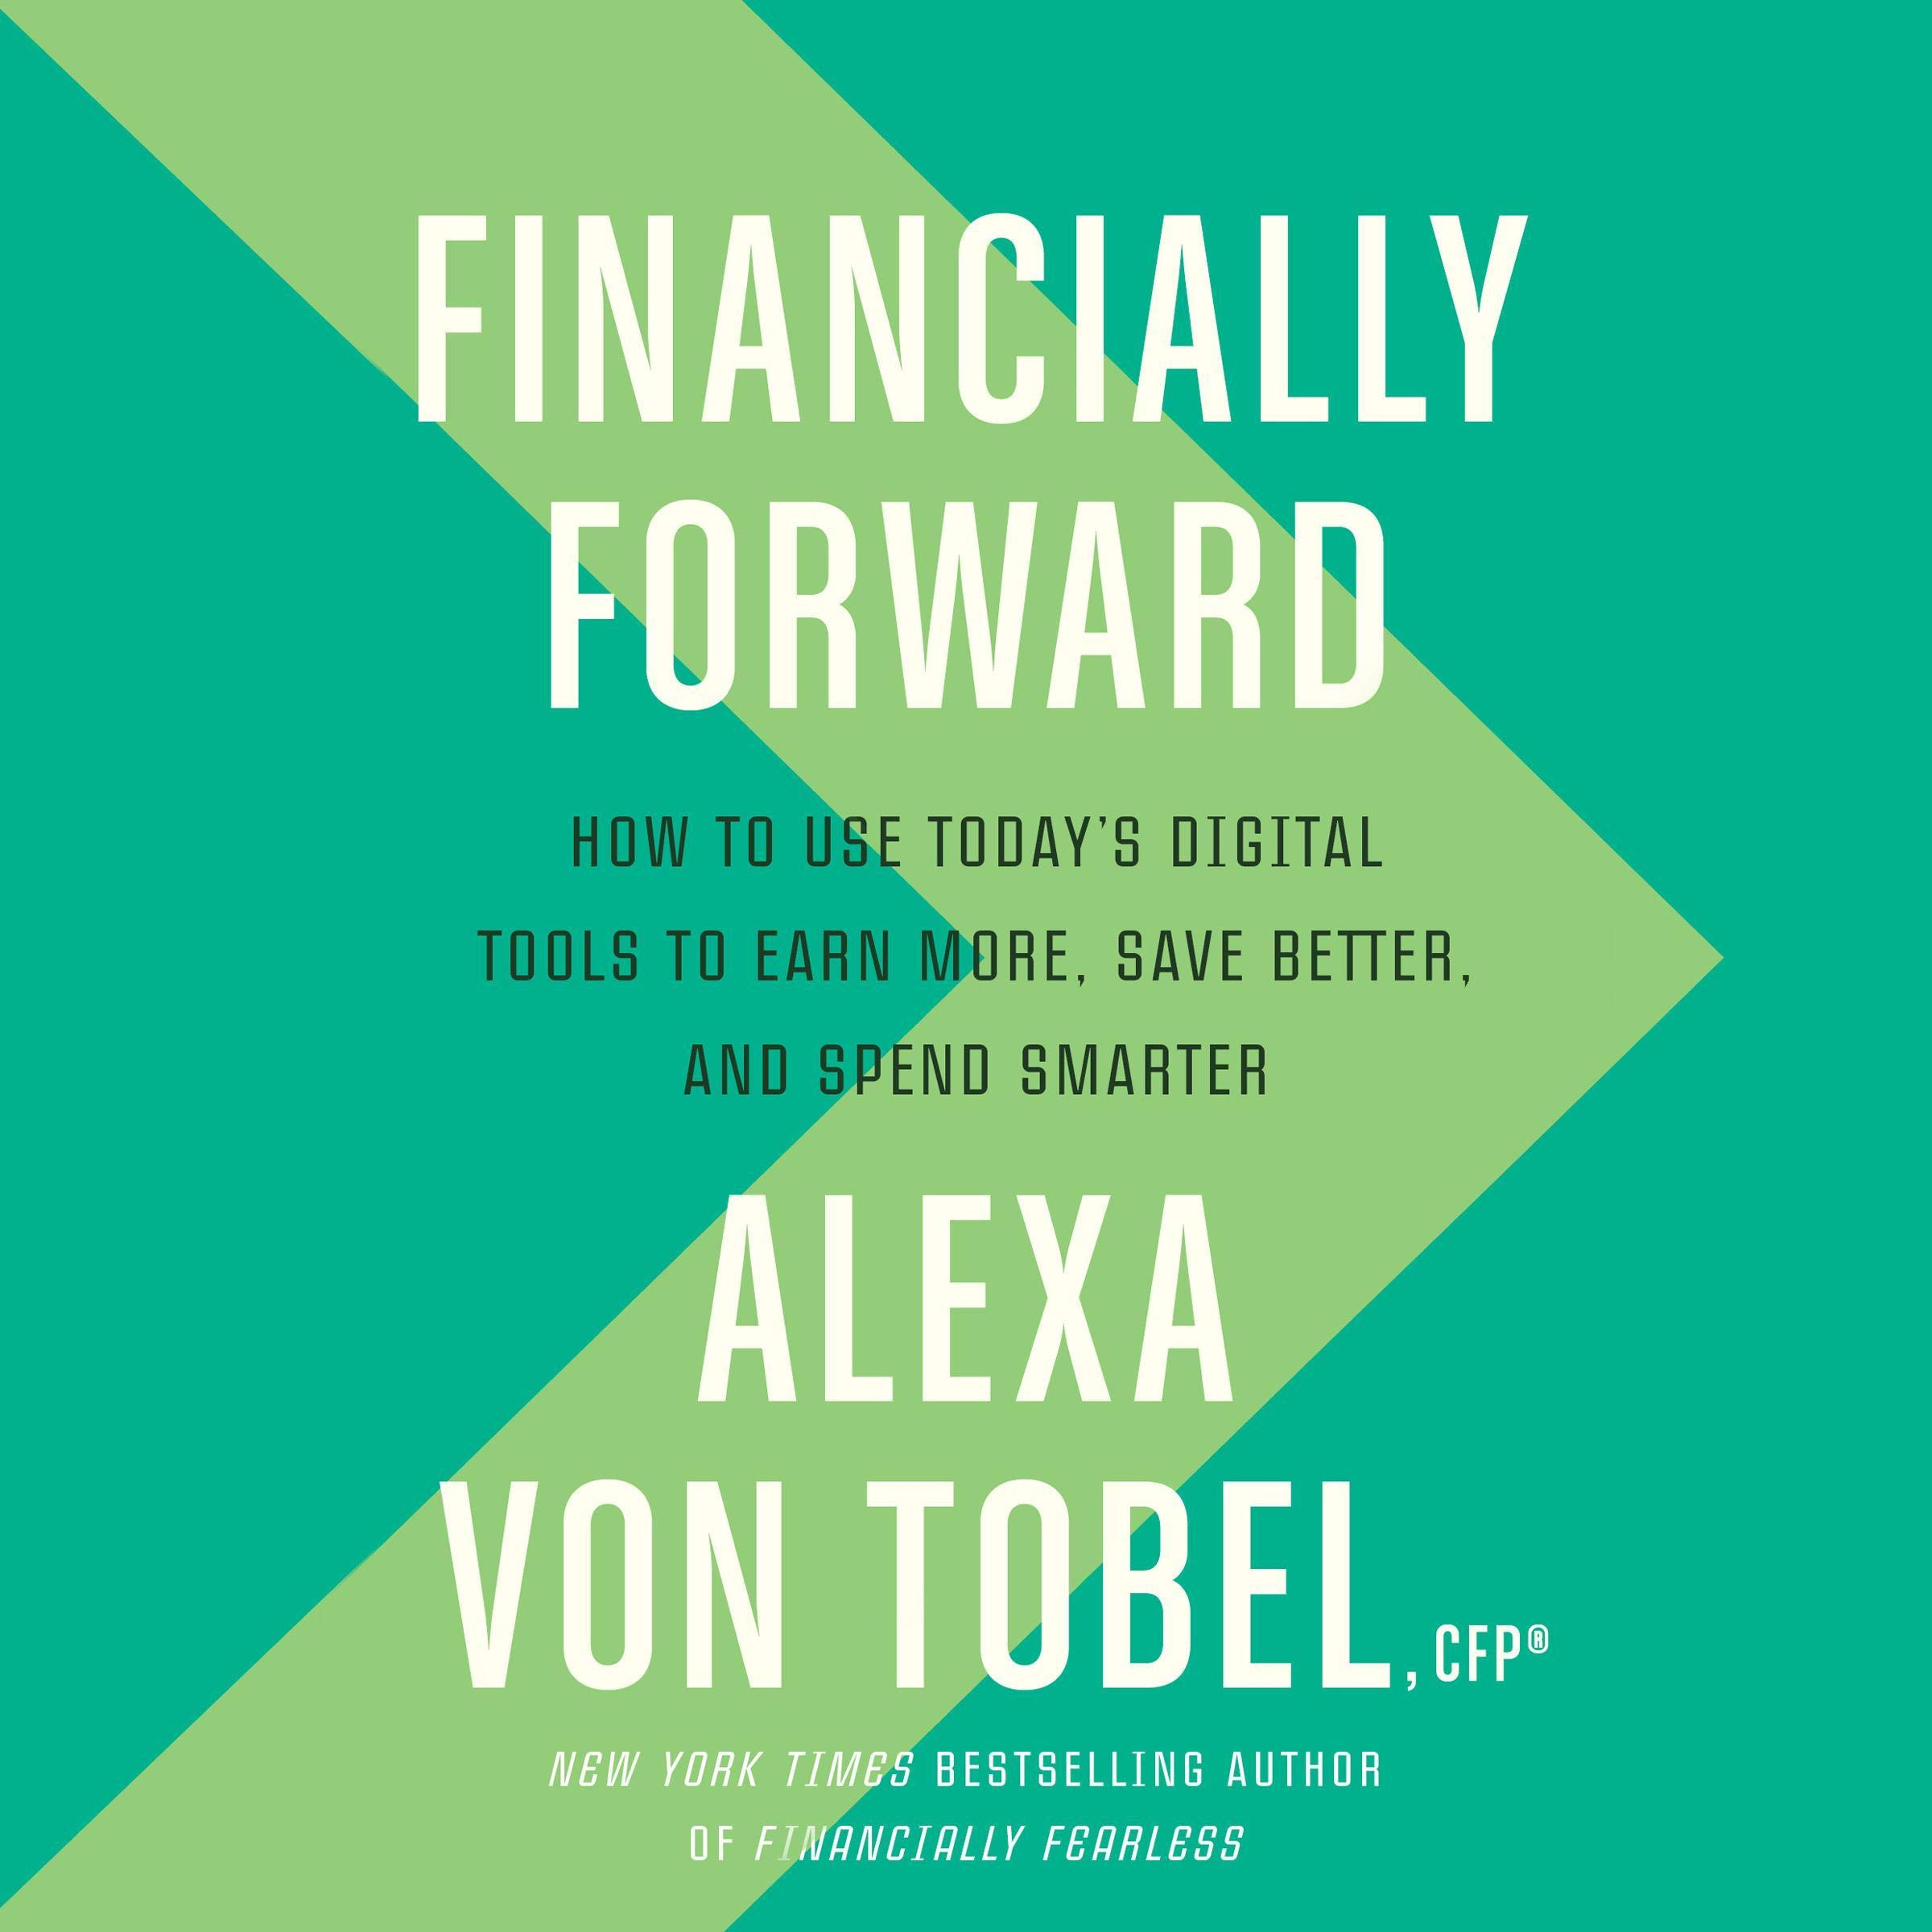 Financially Forward  How To Use Today's Digital Tools To Earn More Save Better And Spend Smarter